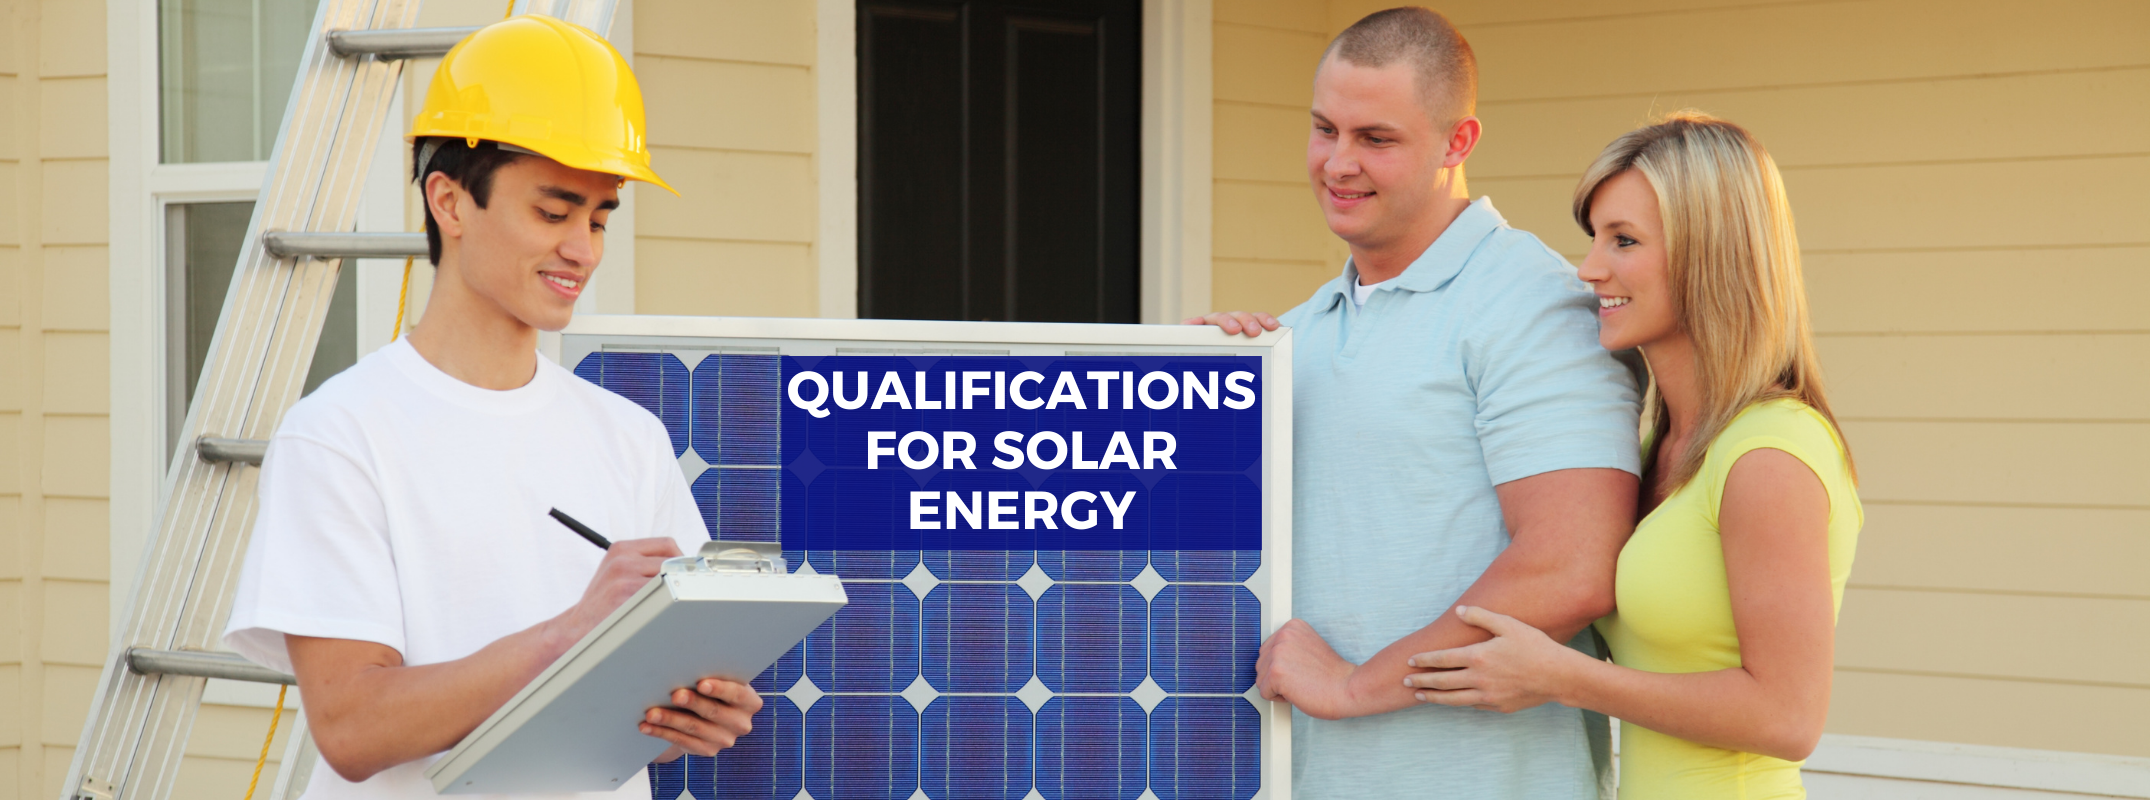 Qualification for the solar energy